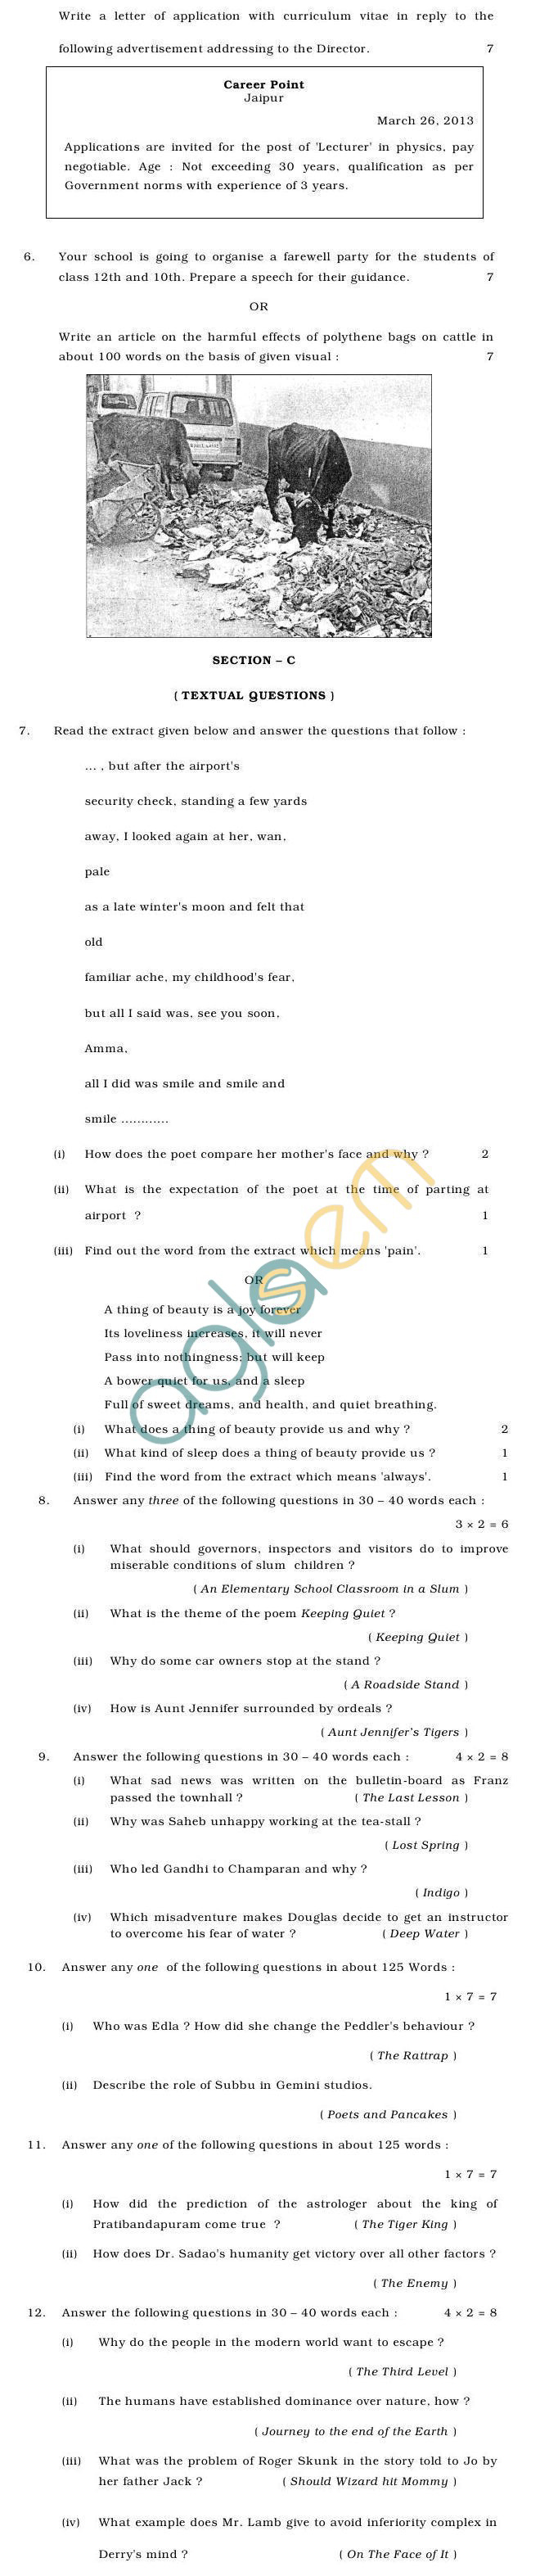 Rajasthan Board V Upadhyay English (C) Question Paper 2013